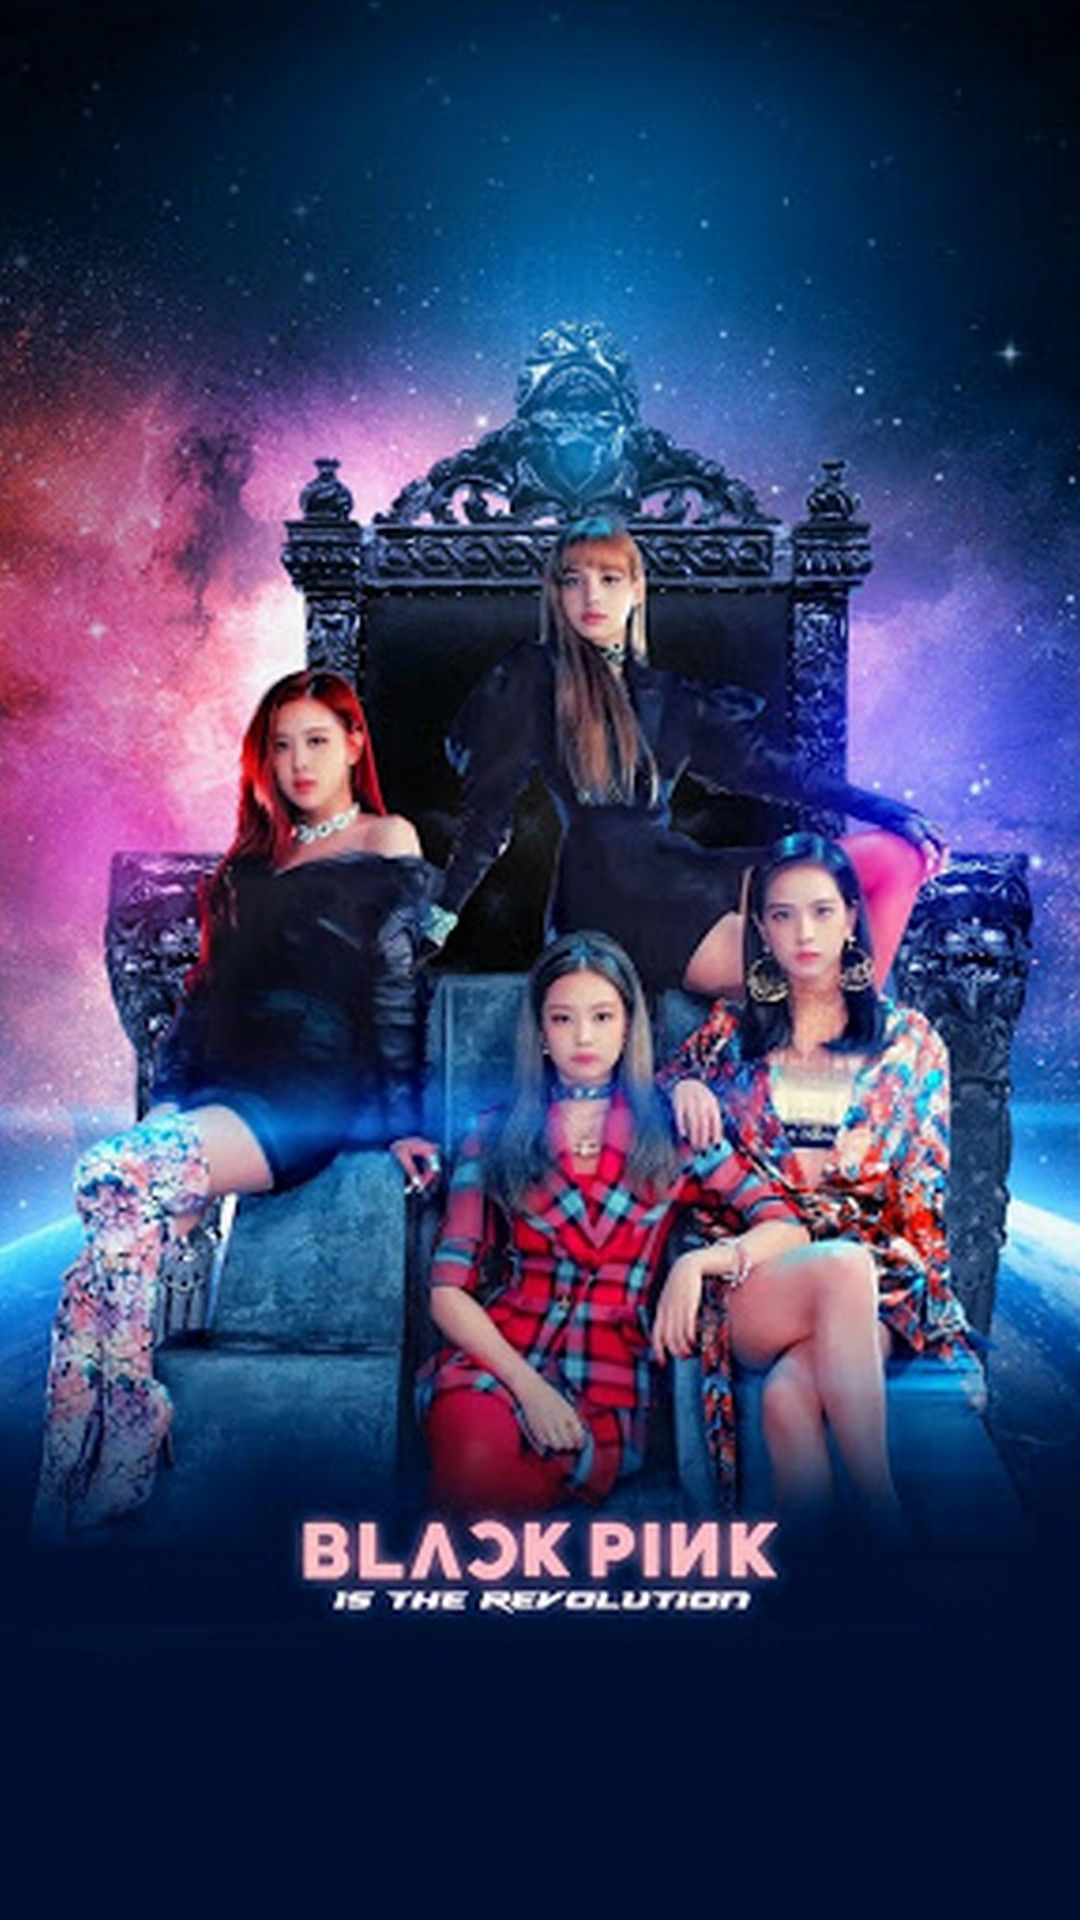 Blackpink Iphone Wallpapers Top Free Blackpink Iphone Backgrounds Wallpaperaccess